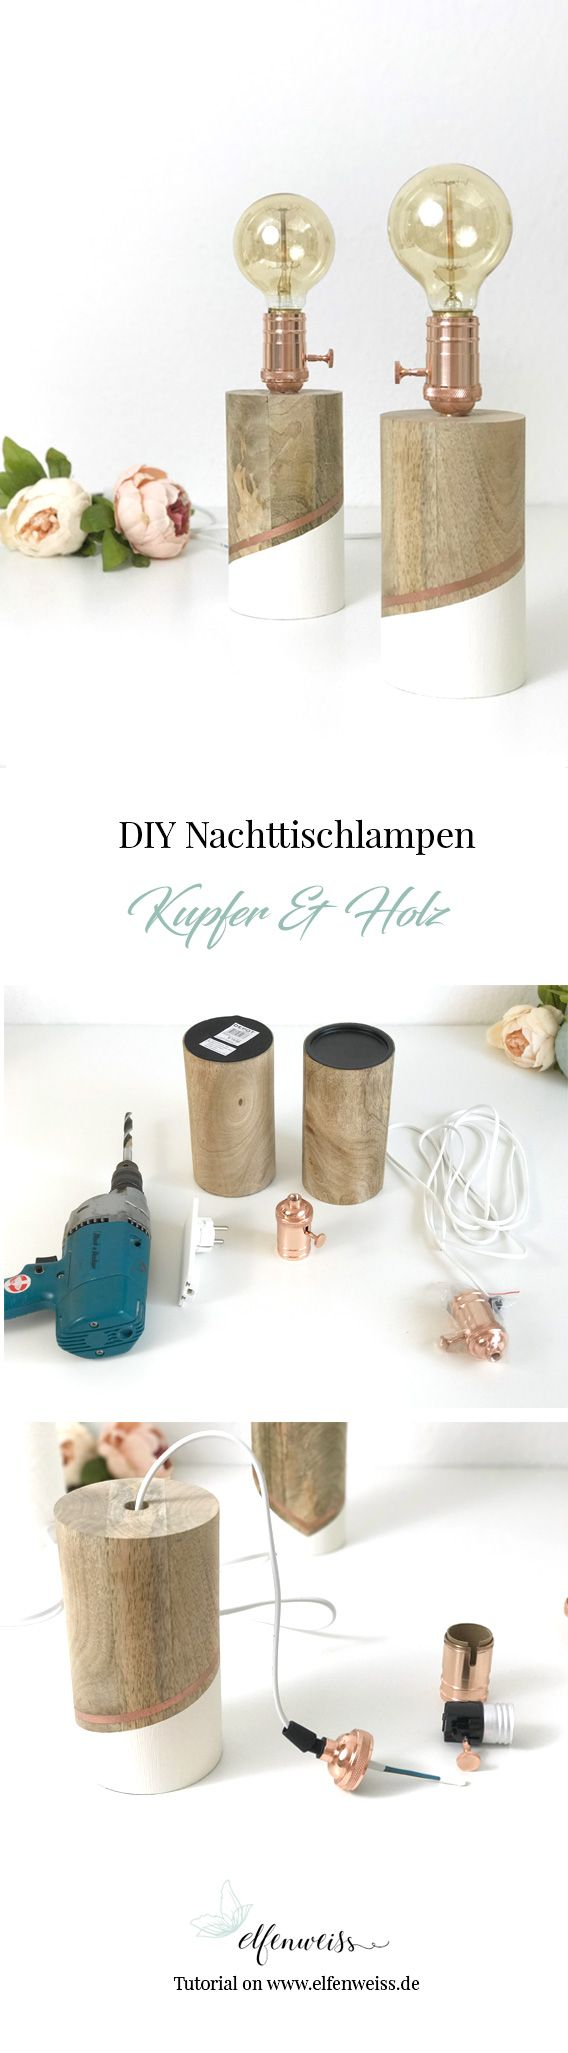 diy nachttischlampe kupfer holz diy home pinterest decoraci n hogar decoraci n de. Black Bedroom Furniture Sets. Home Design Ideas